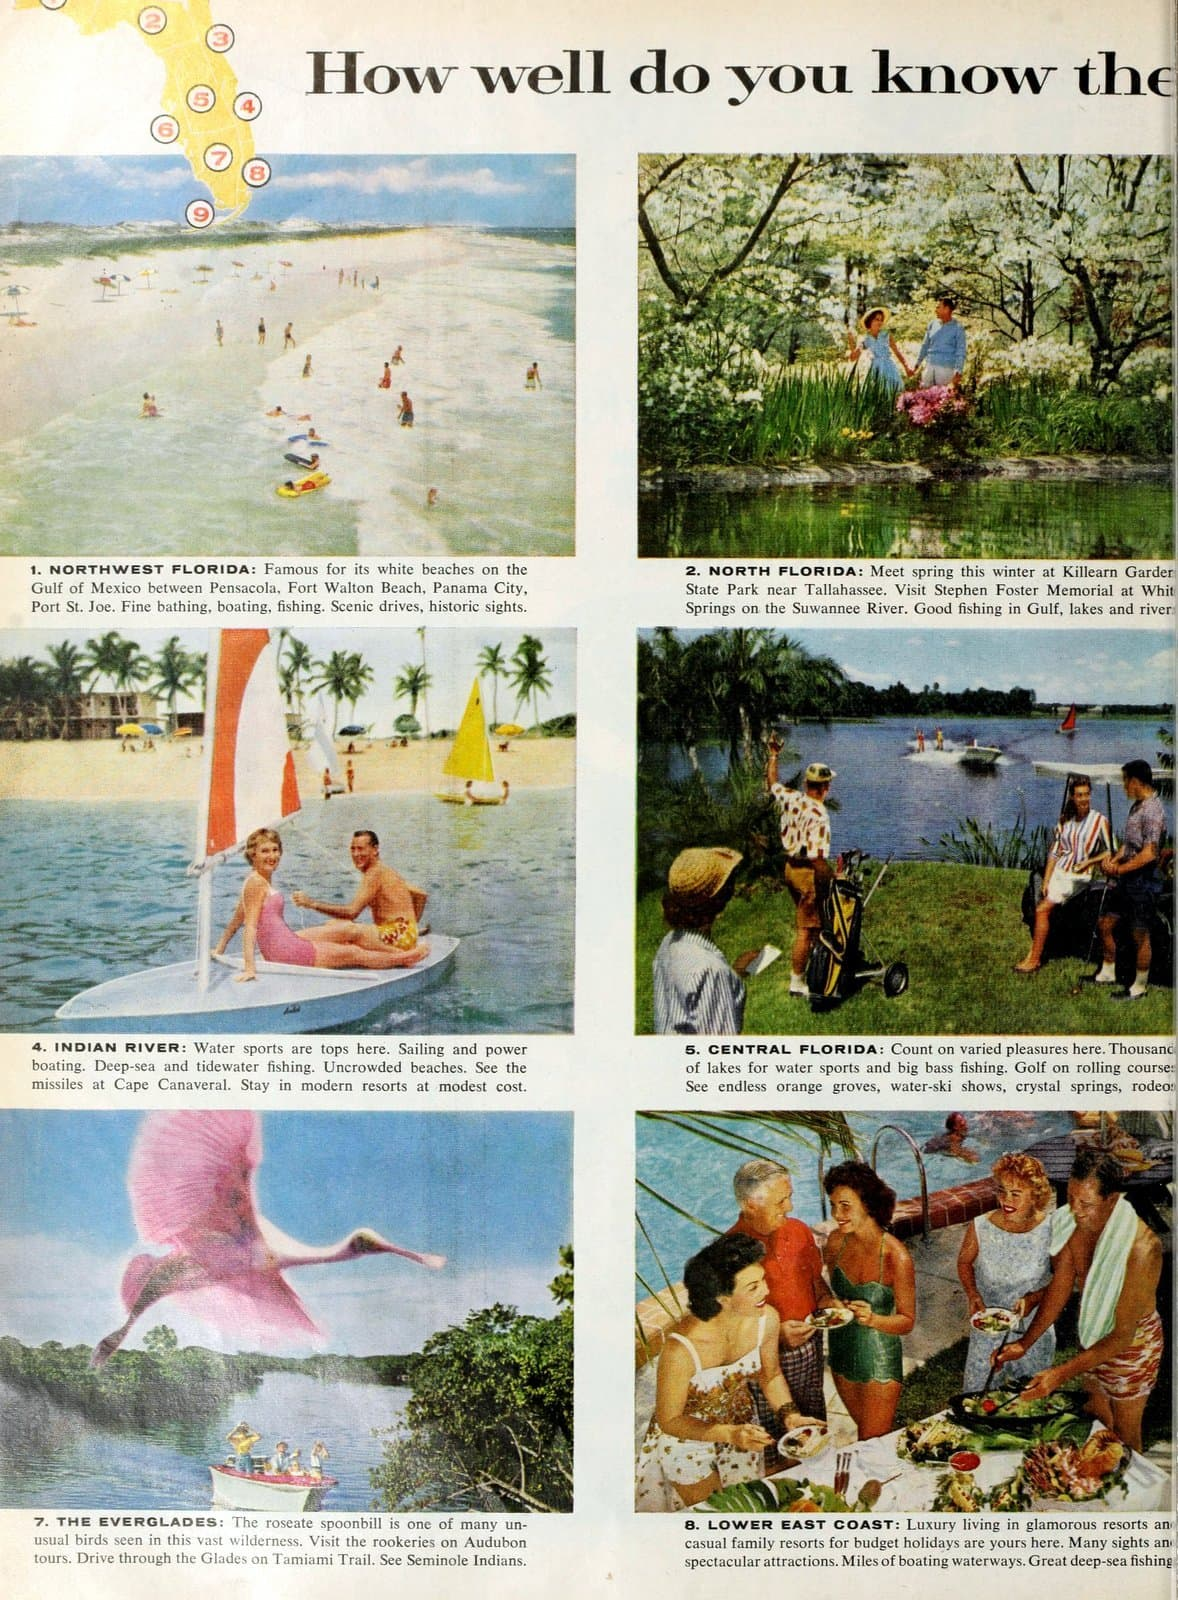 The 9 vacation regions of Florida in 1960 (2)